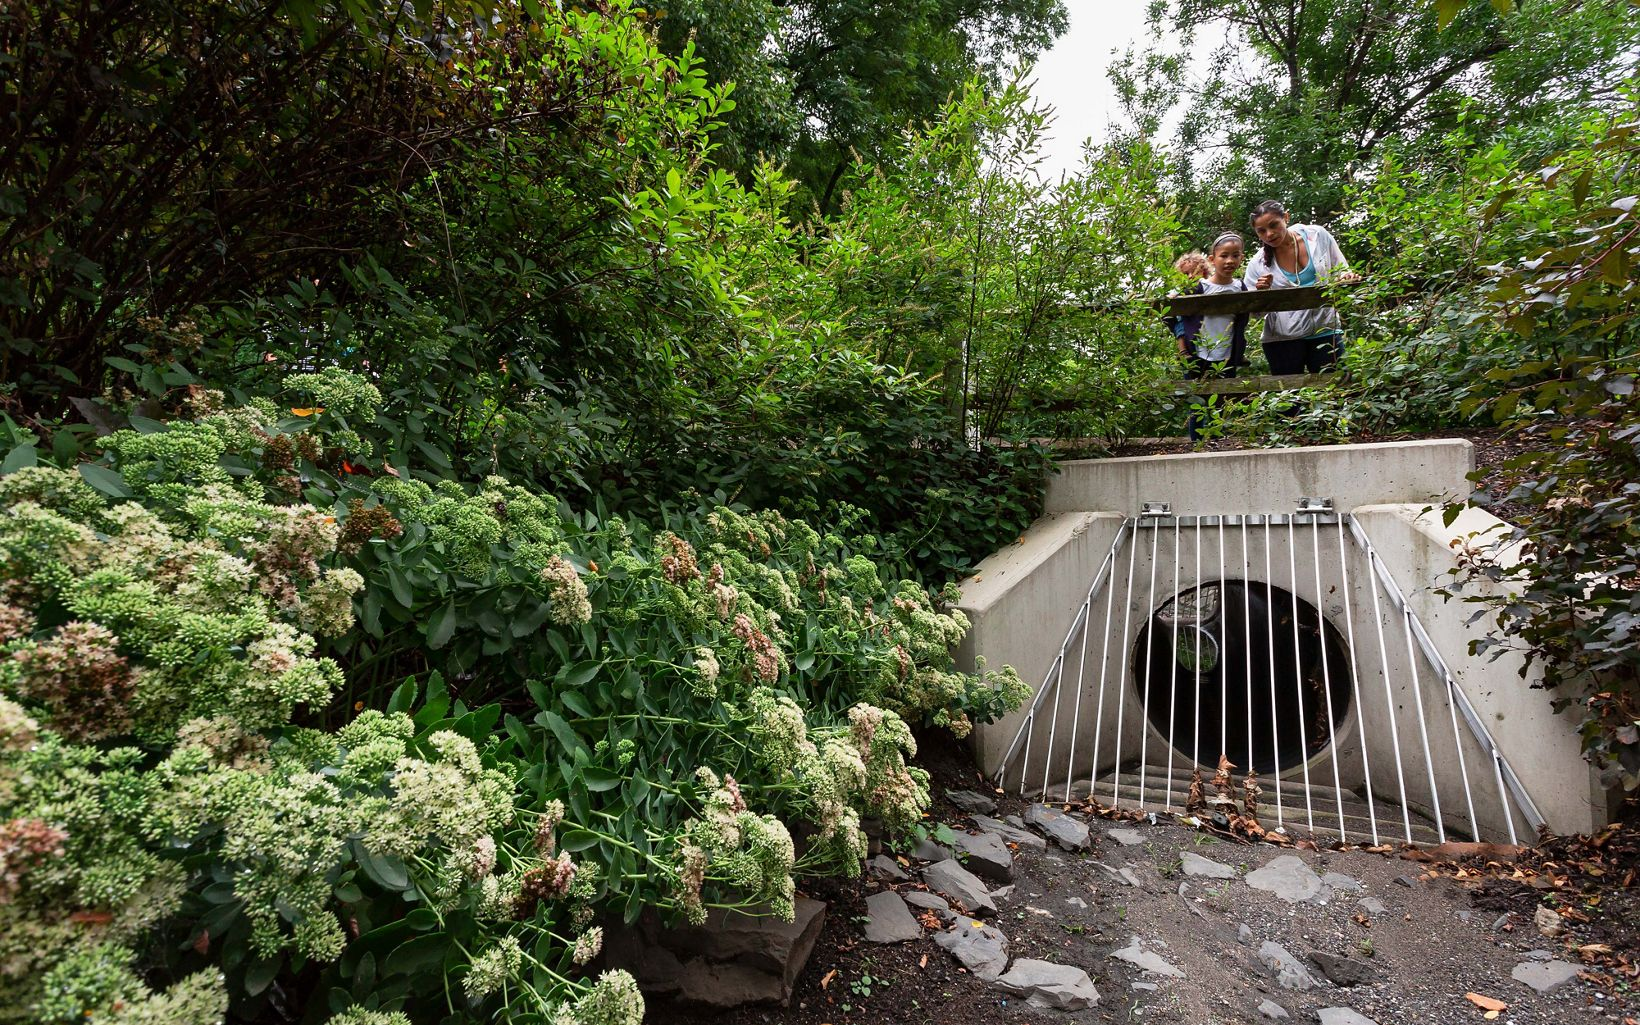 a culvert and bridge surrounded by plants and flowers